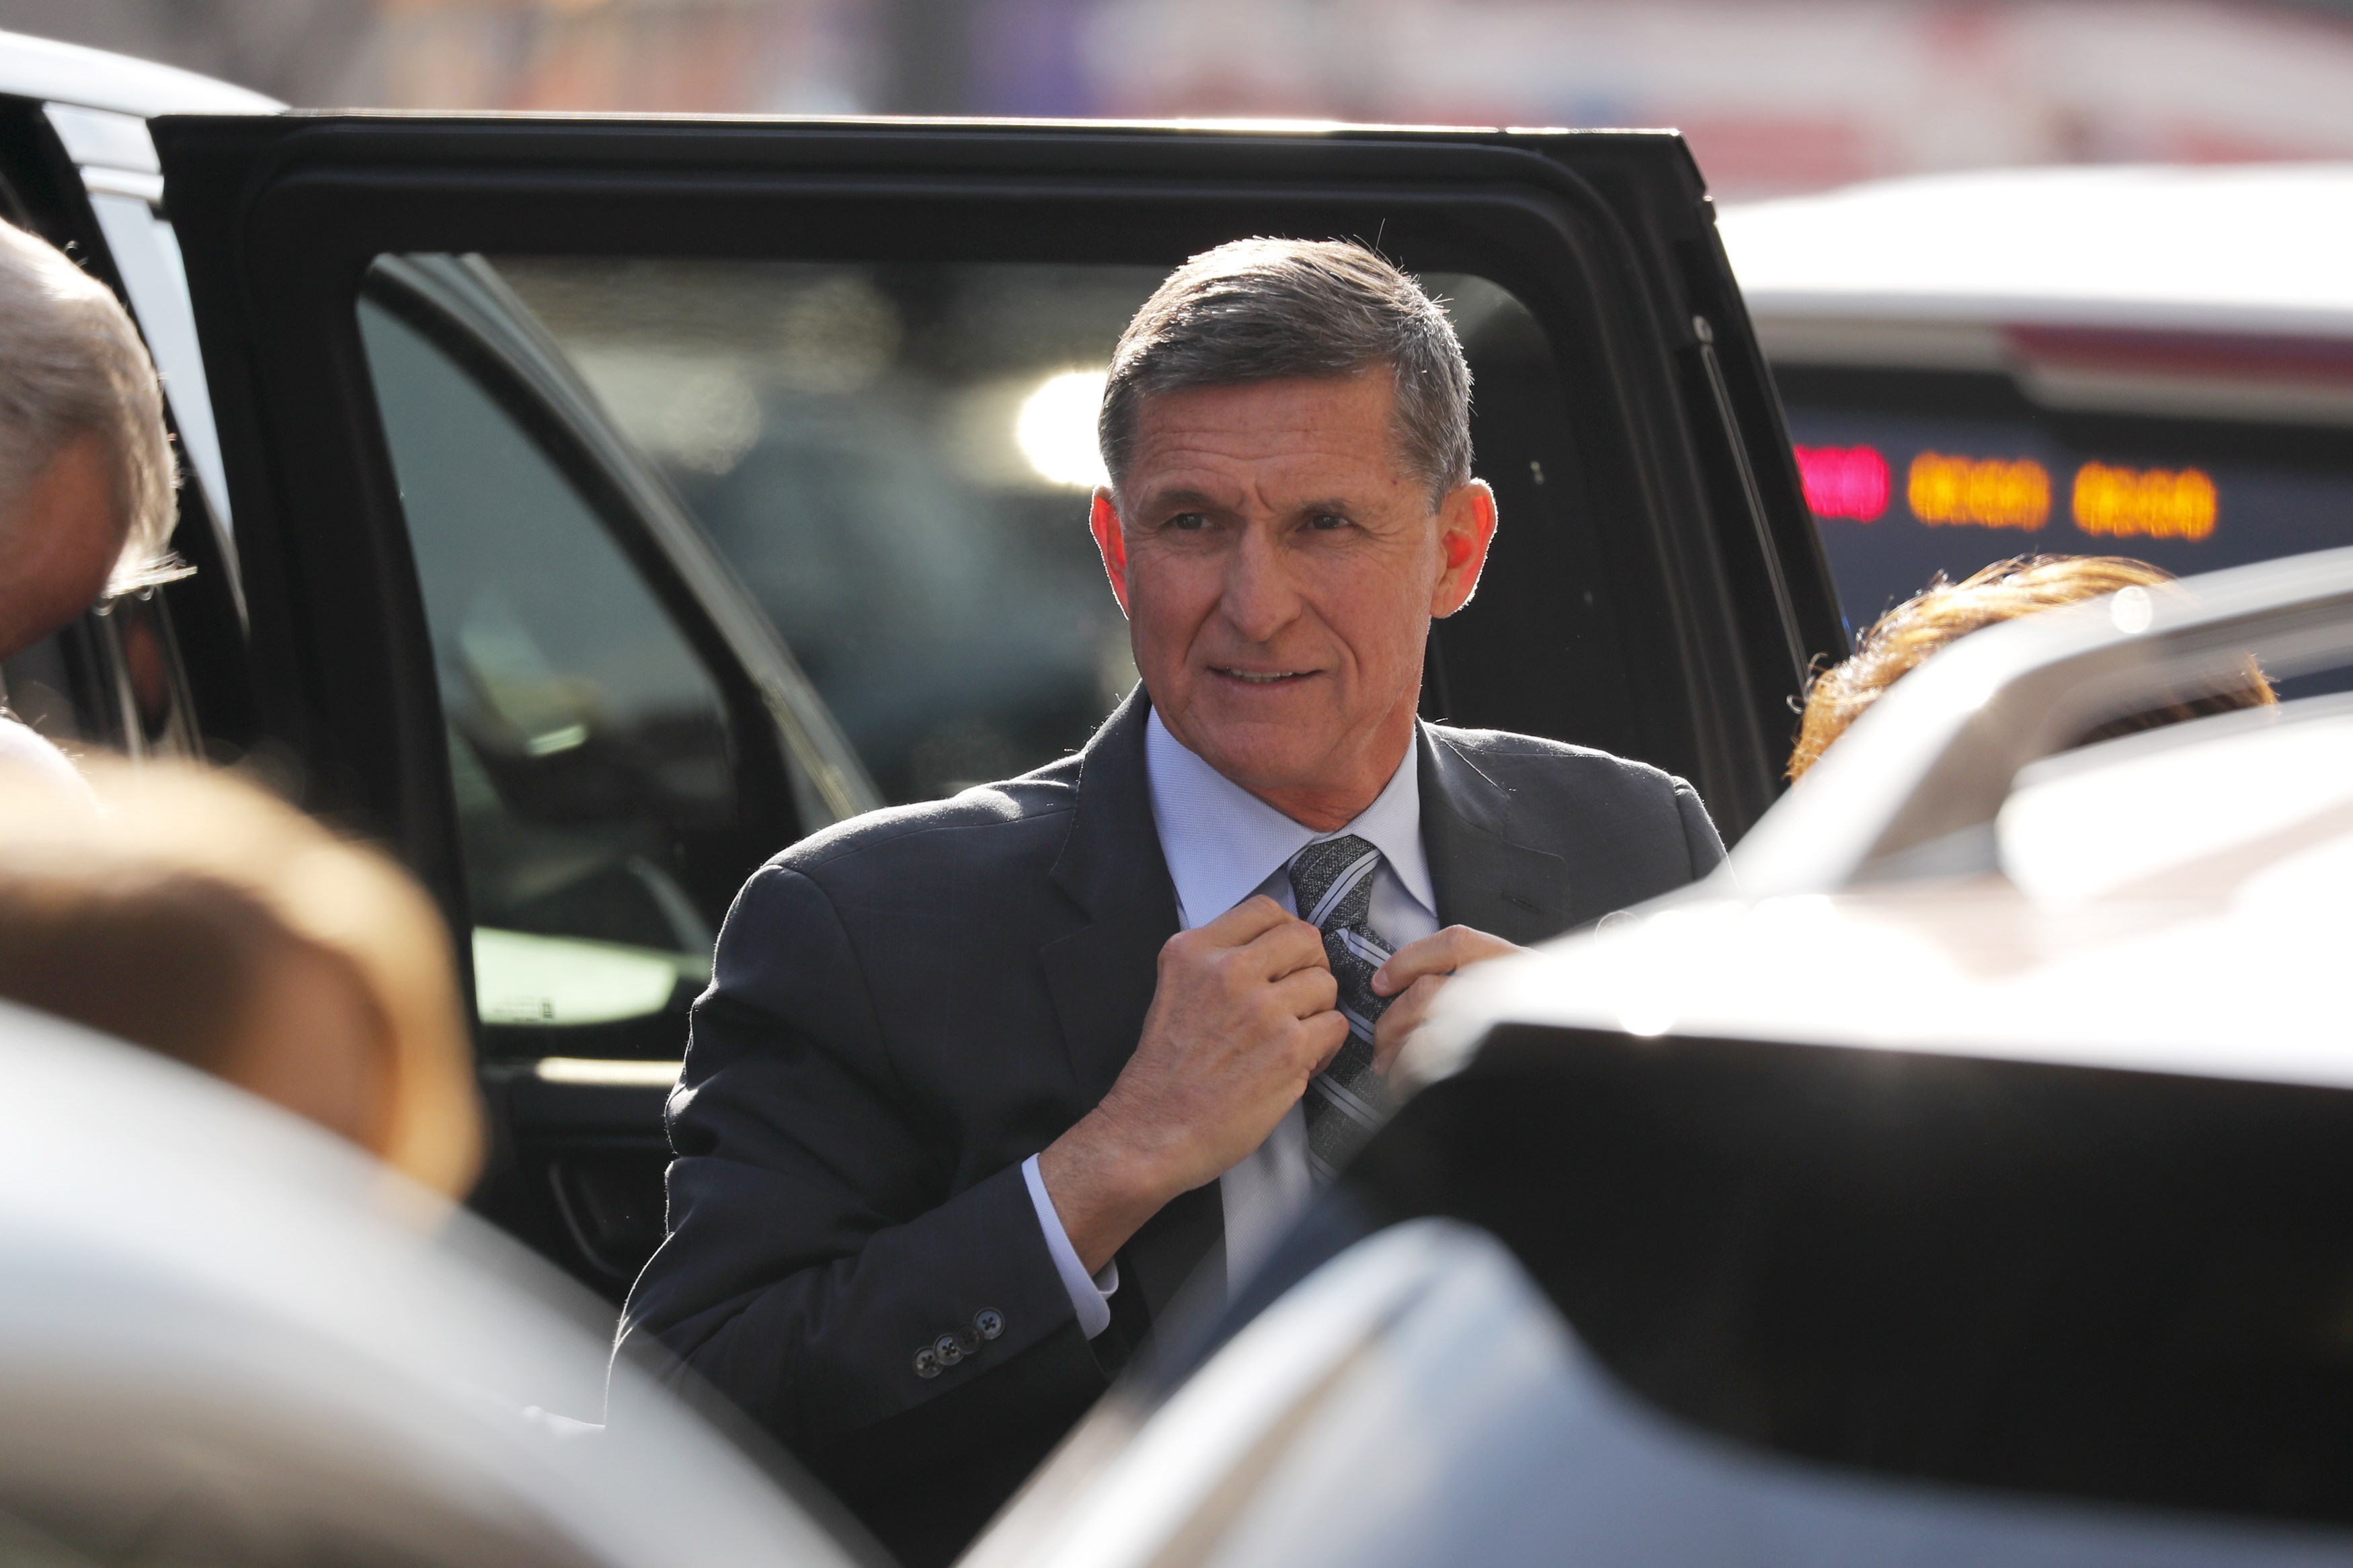 Flynn prepared to testify Trump directed him to contact Russians: ABC